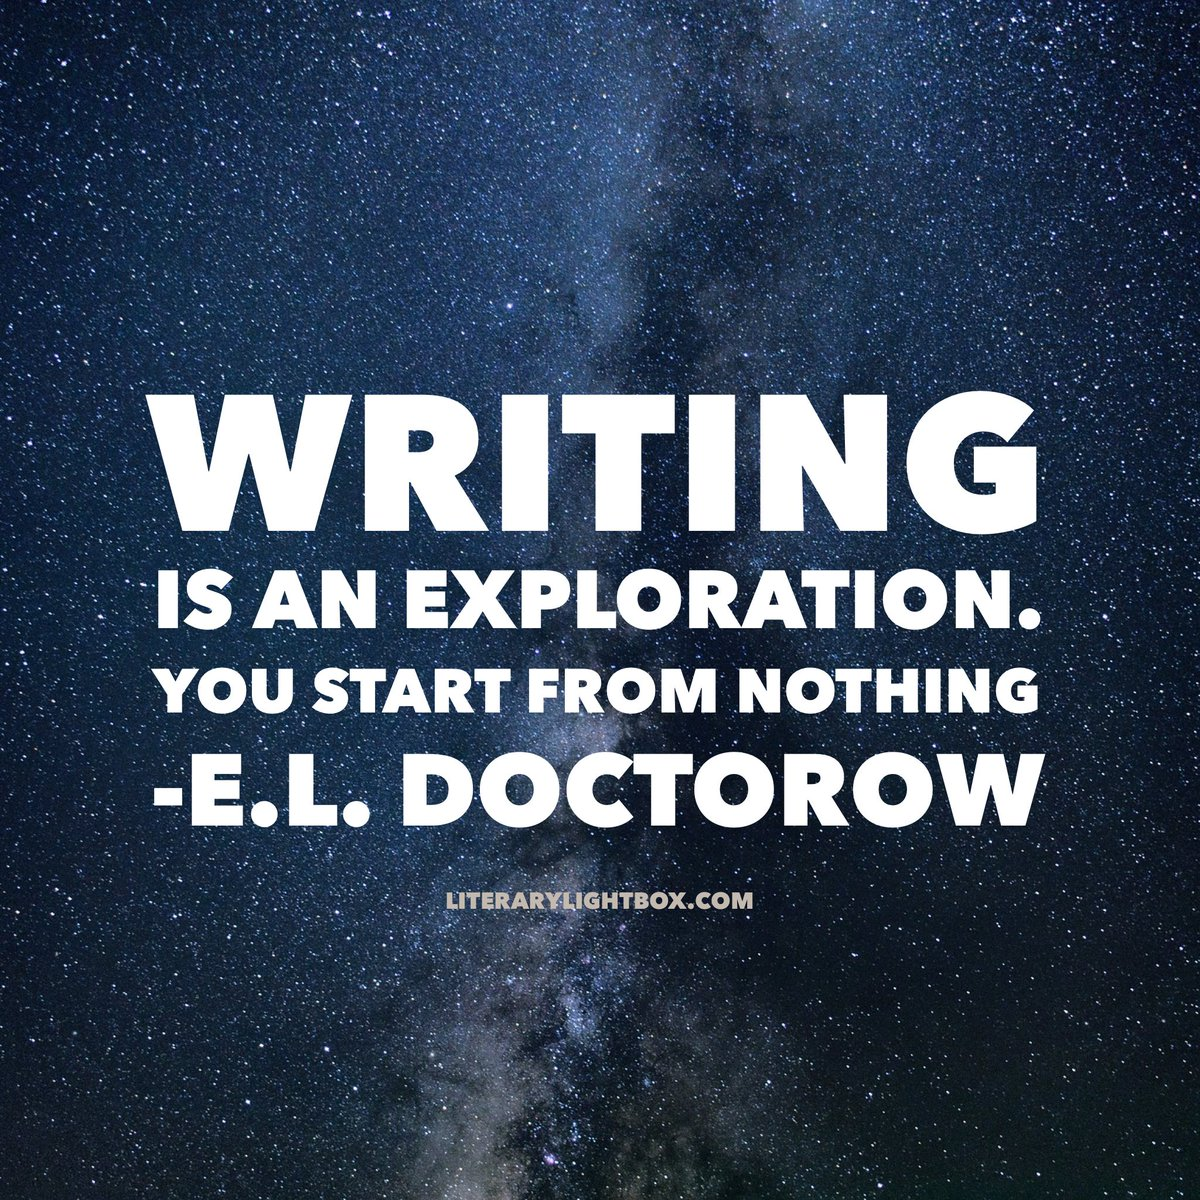 ... and then you sail off towards the edge of the known world. That's exactly what #writing is like.